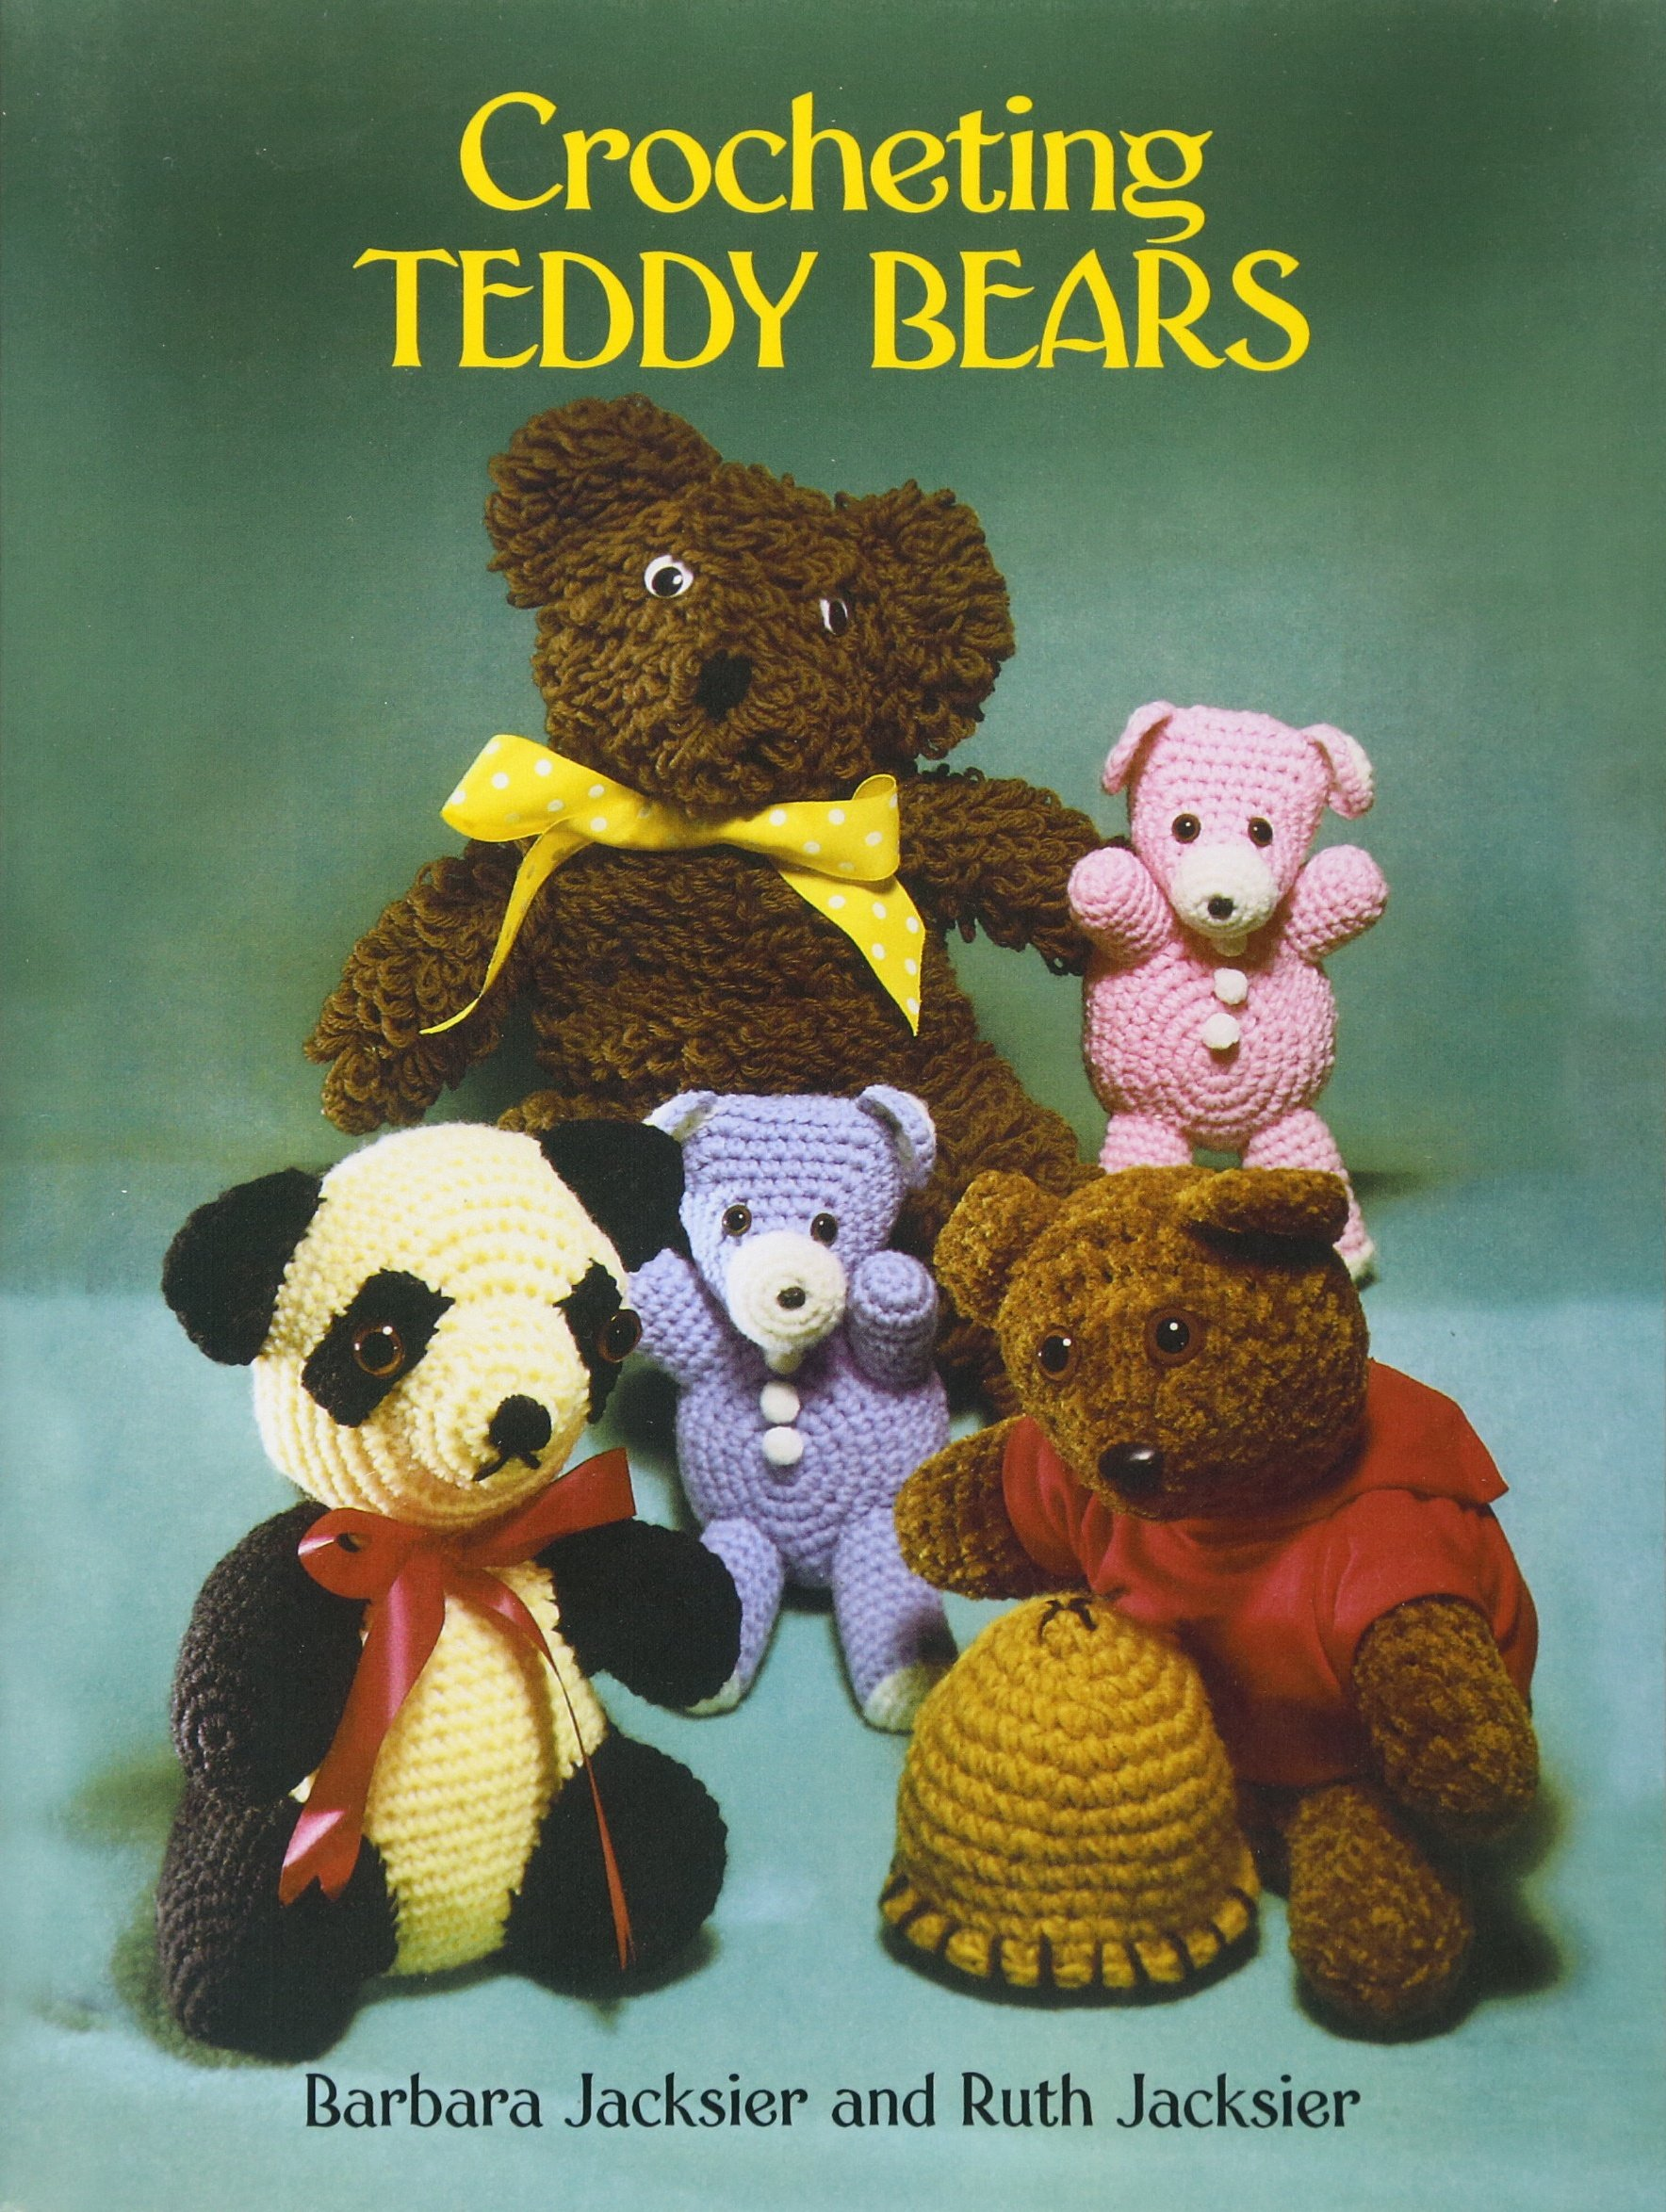 Crocheting teddy bears 16 designs for toys dover knitting crocheting teddy bears 16 designs for toys dover knitting crochet tatting lace barbara jacksier ruth jacksier 0800759246397 amazon books bankloansurffo Choice Image